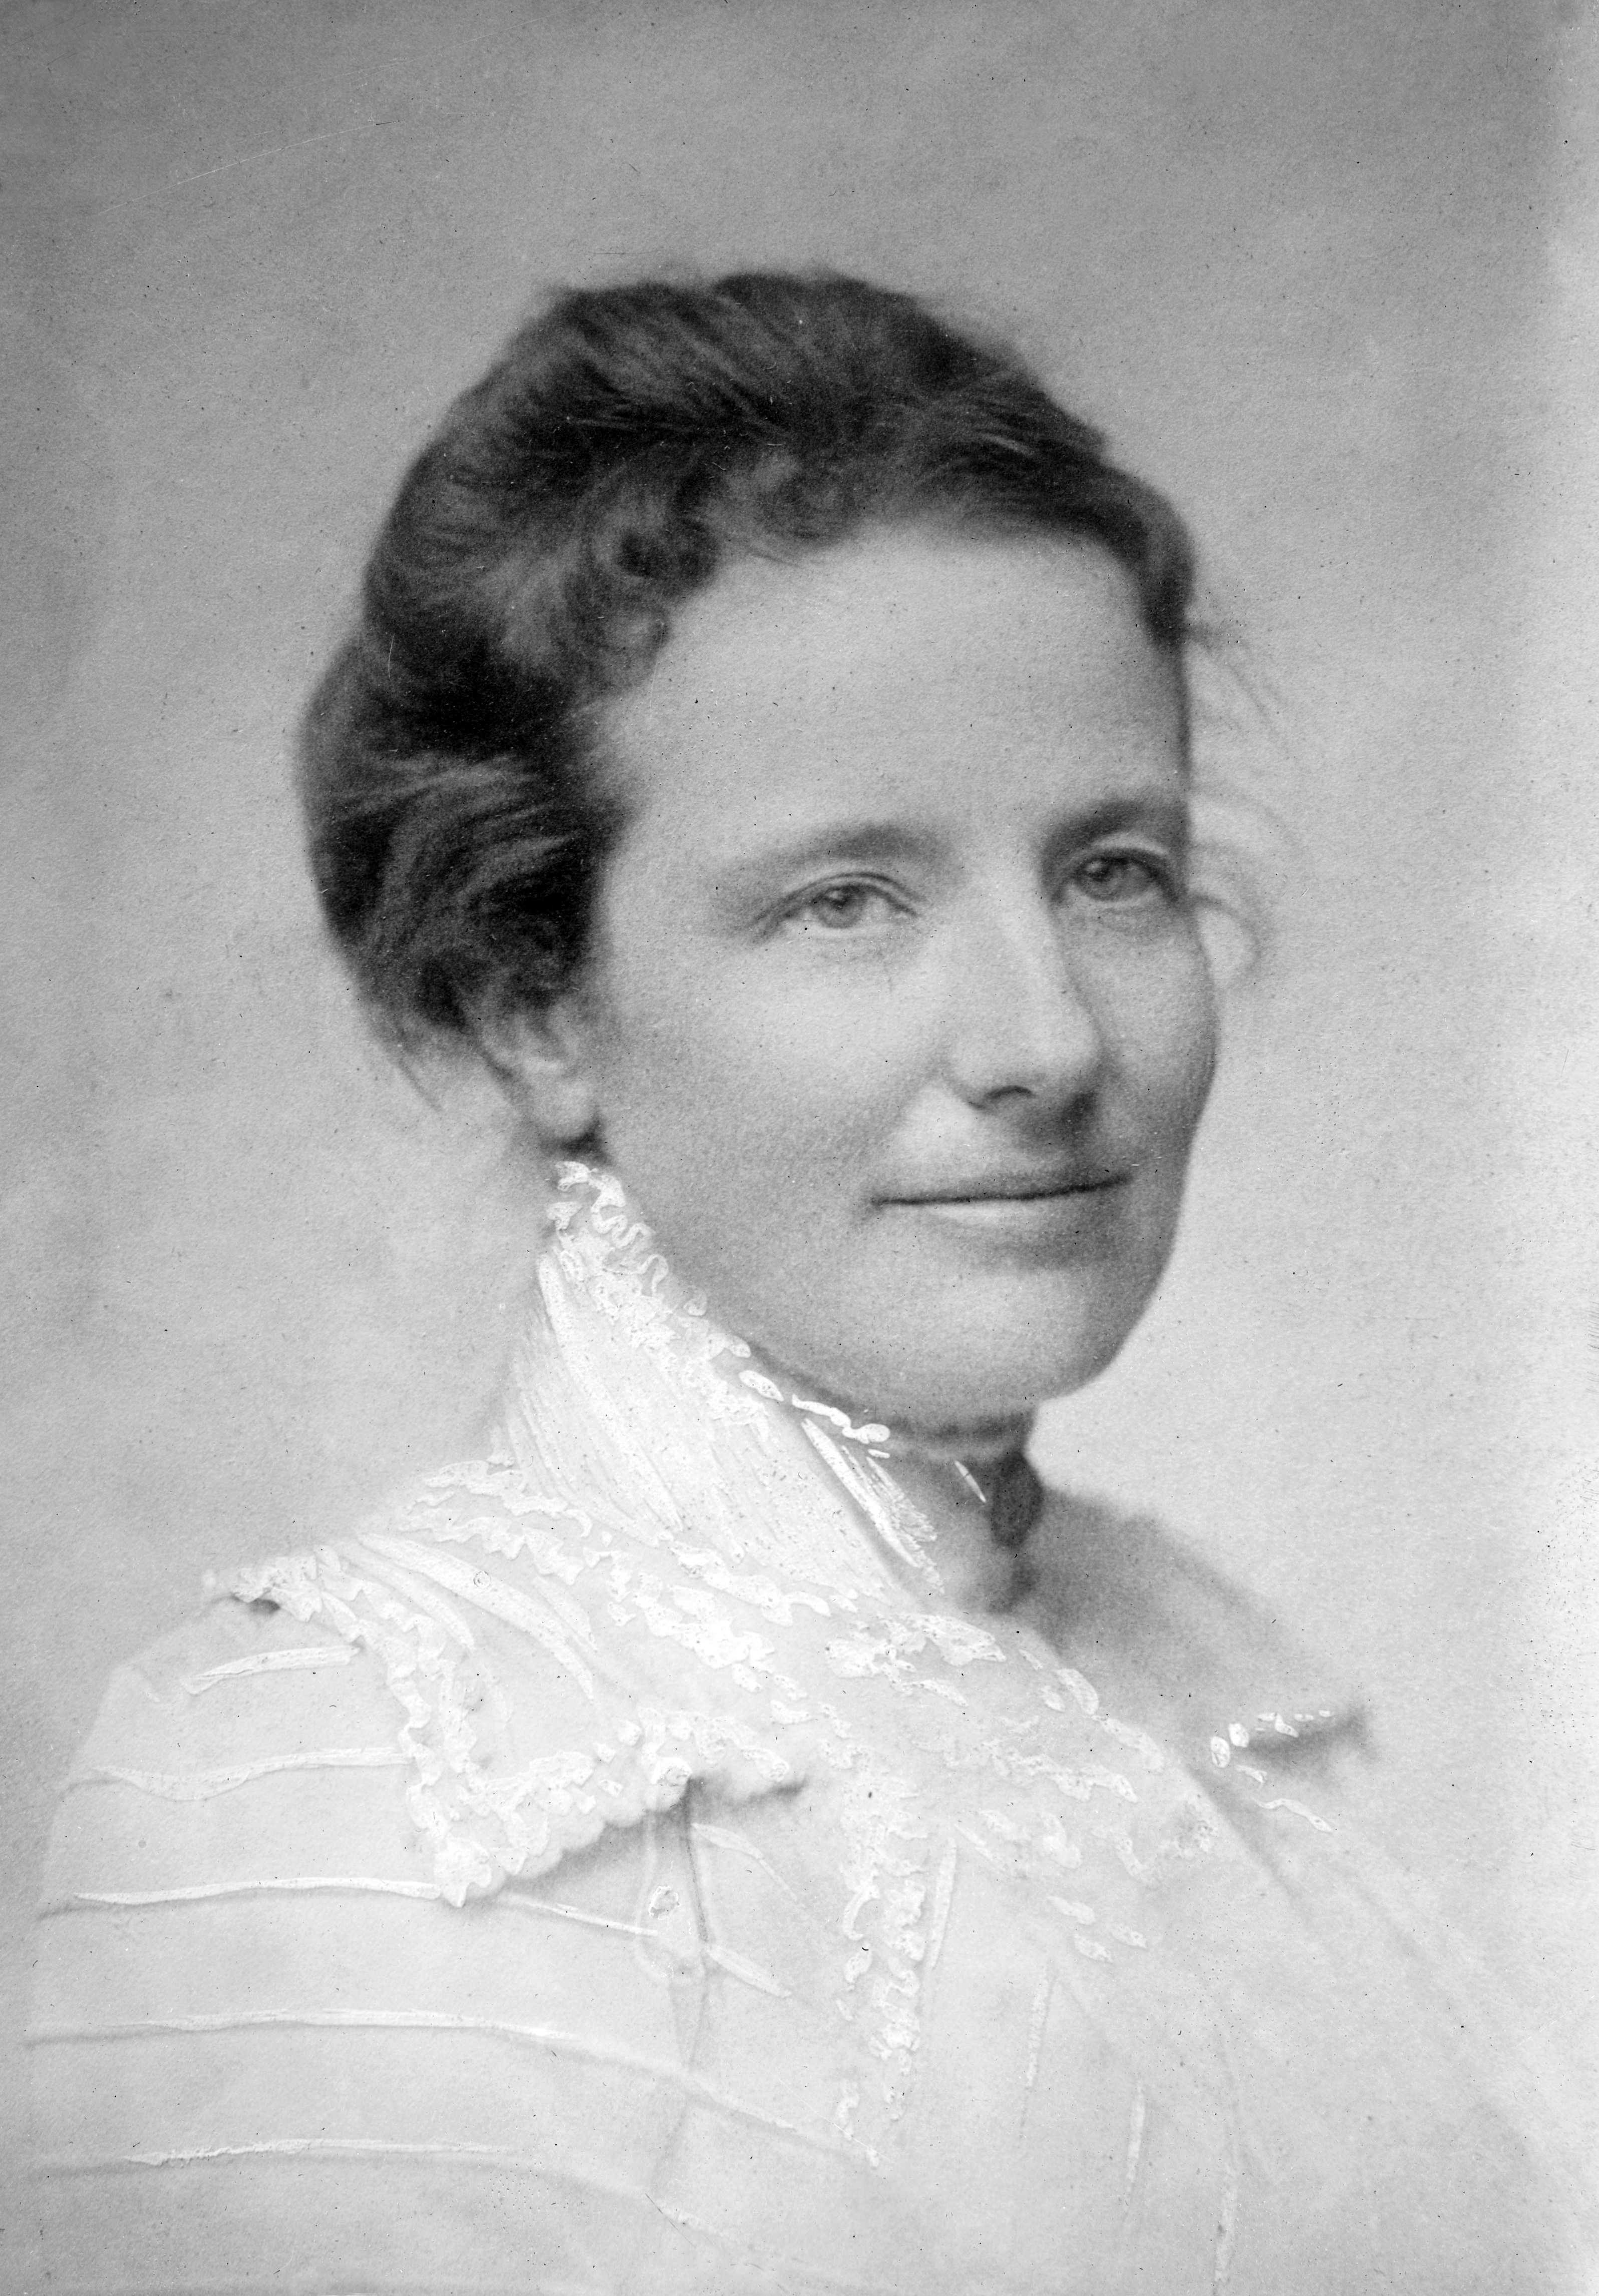 Edith Kermit Carow Roosevelt, second wife of Theodore Roosevelt